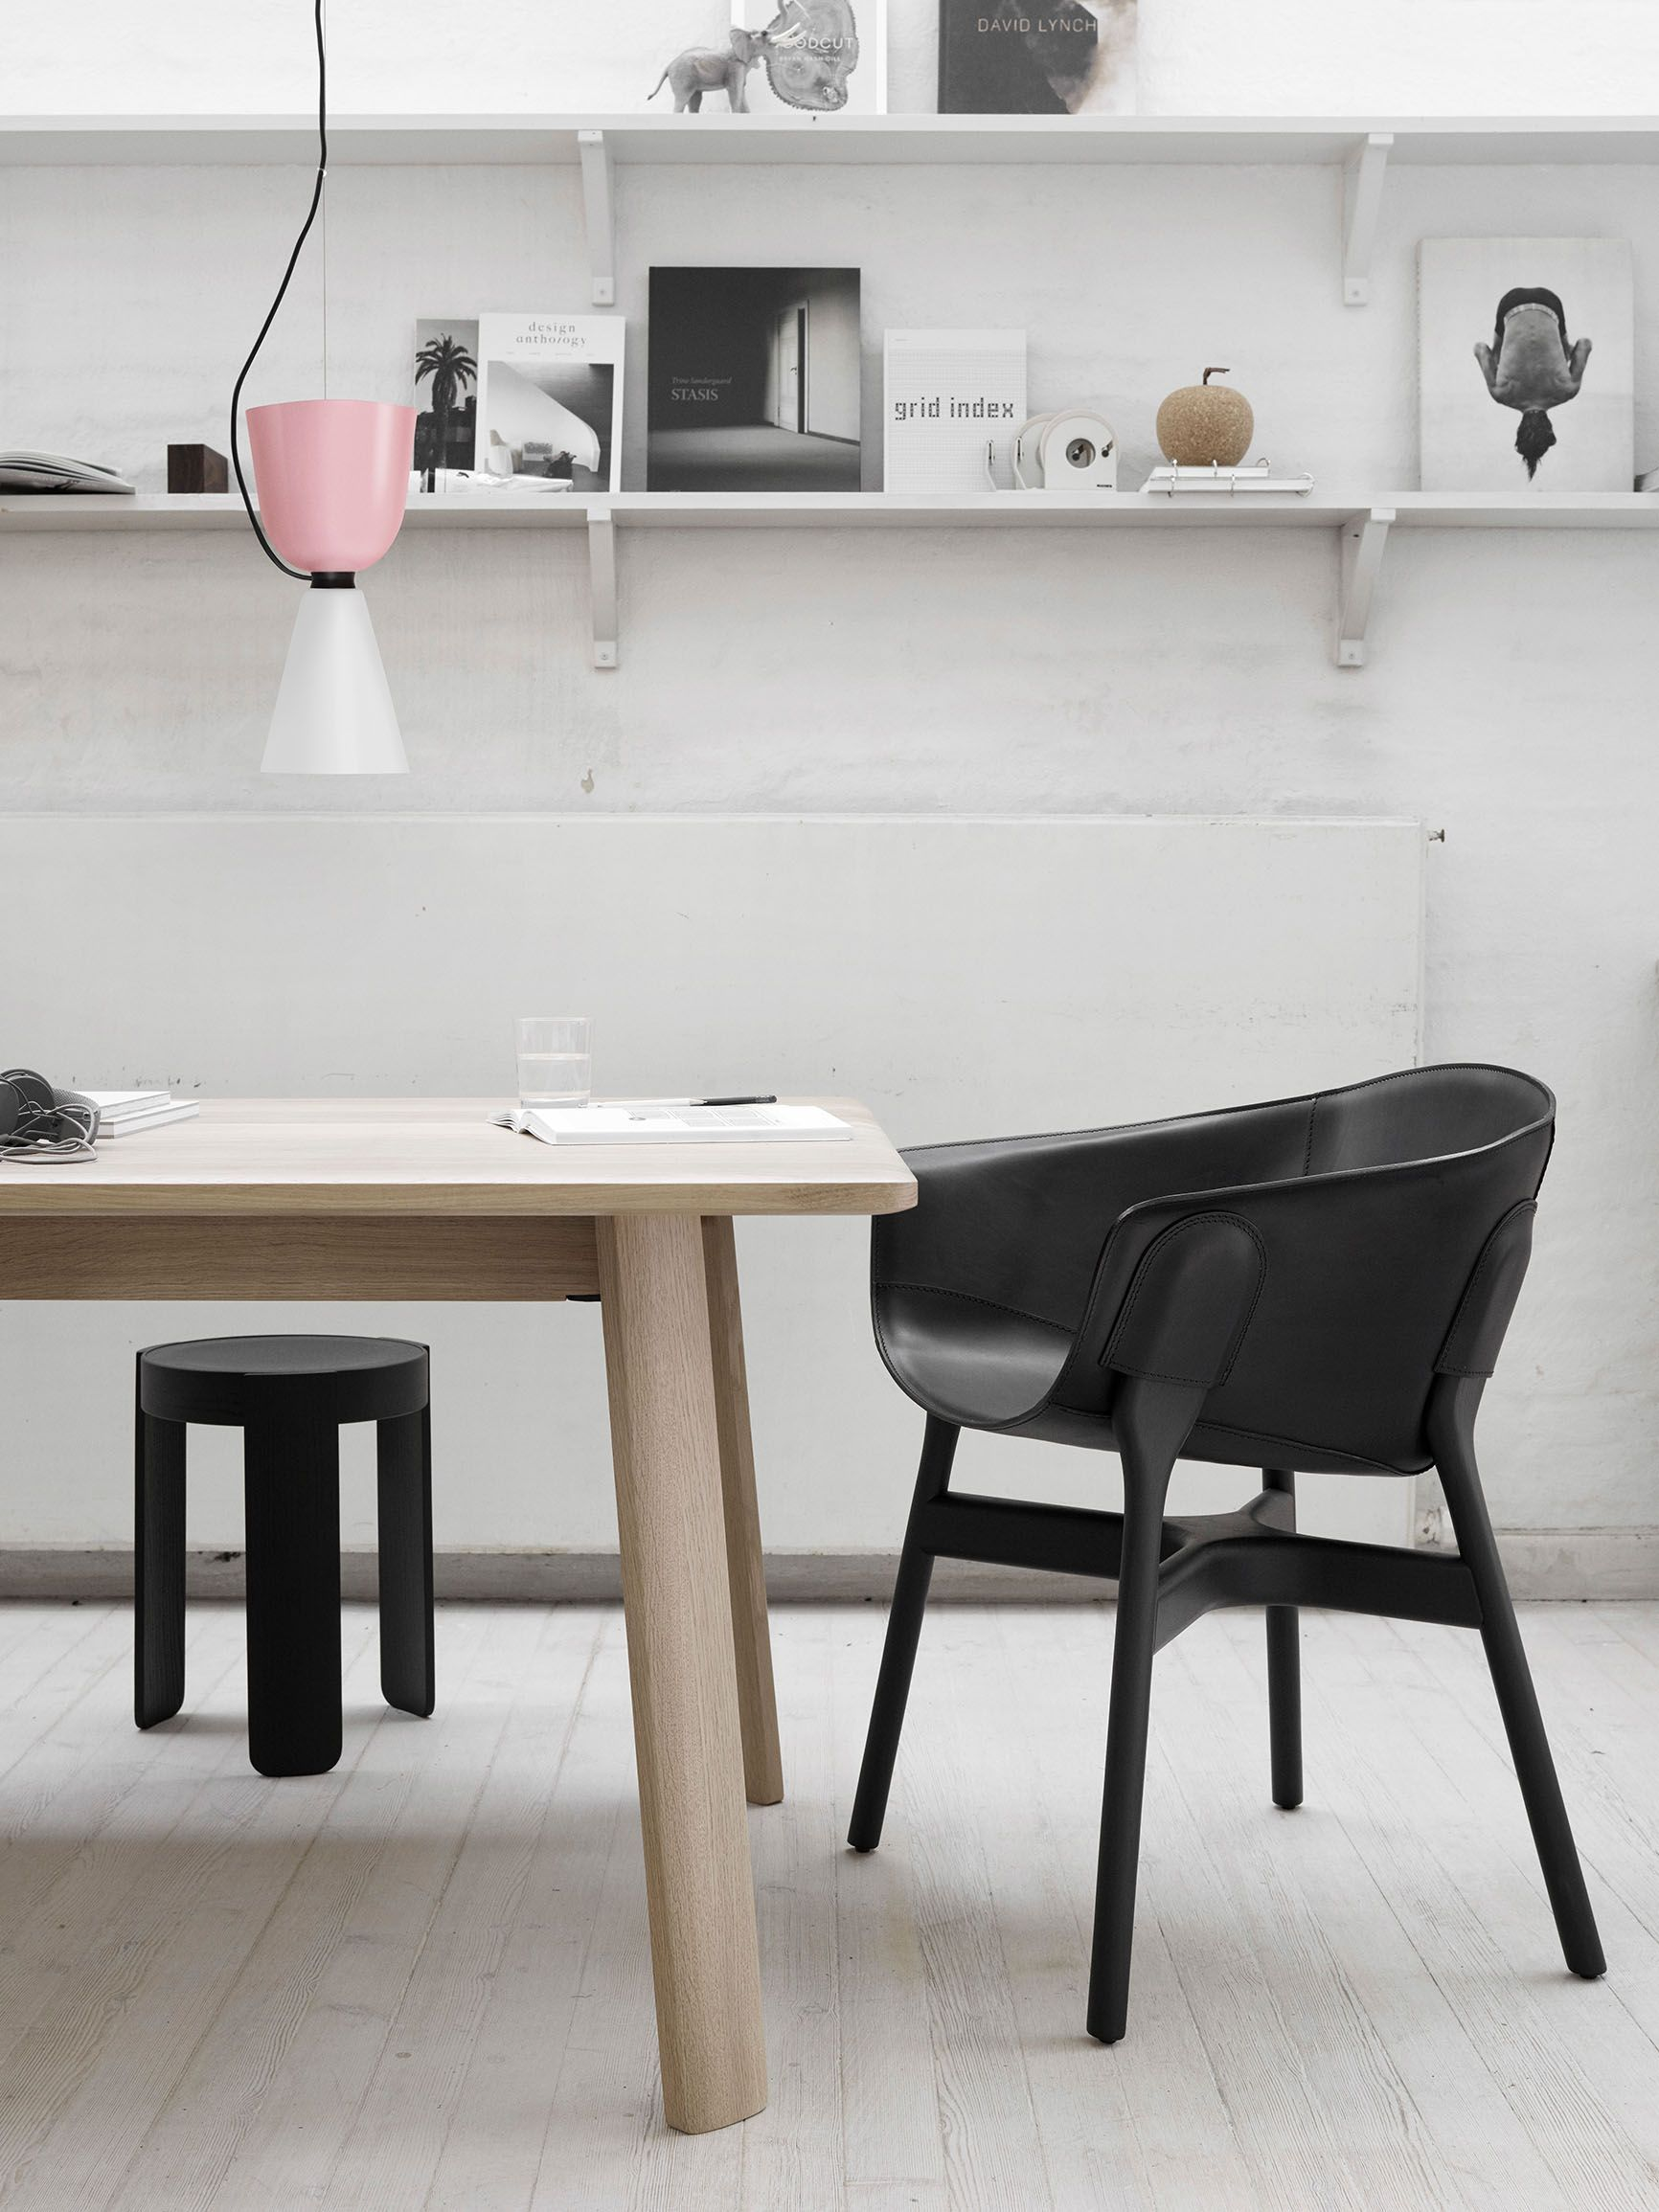 The Pocket chair is the creation of German designers DING3000 for